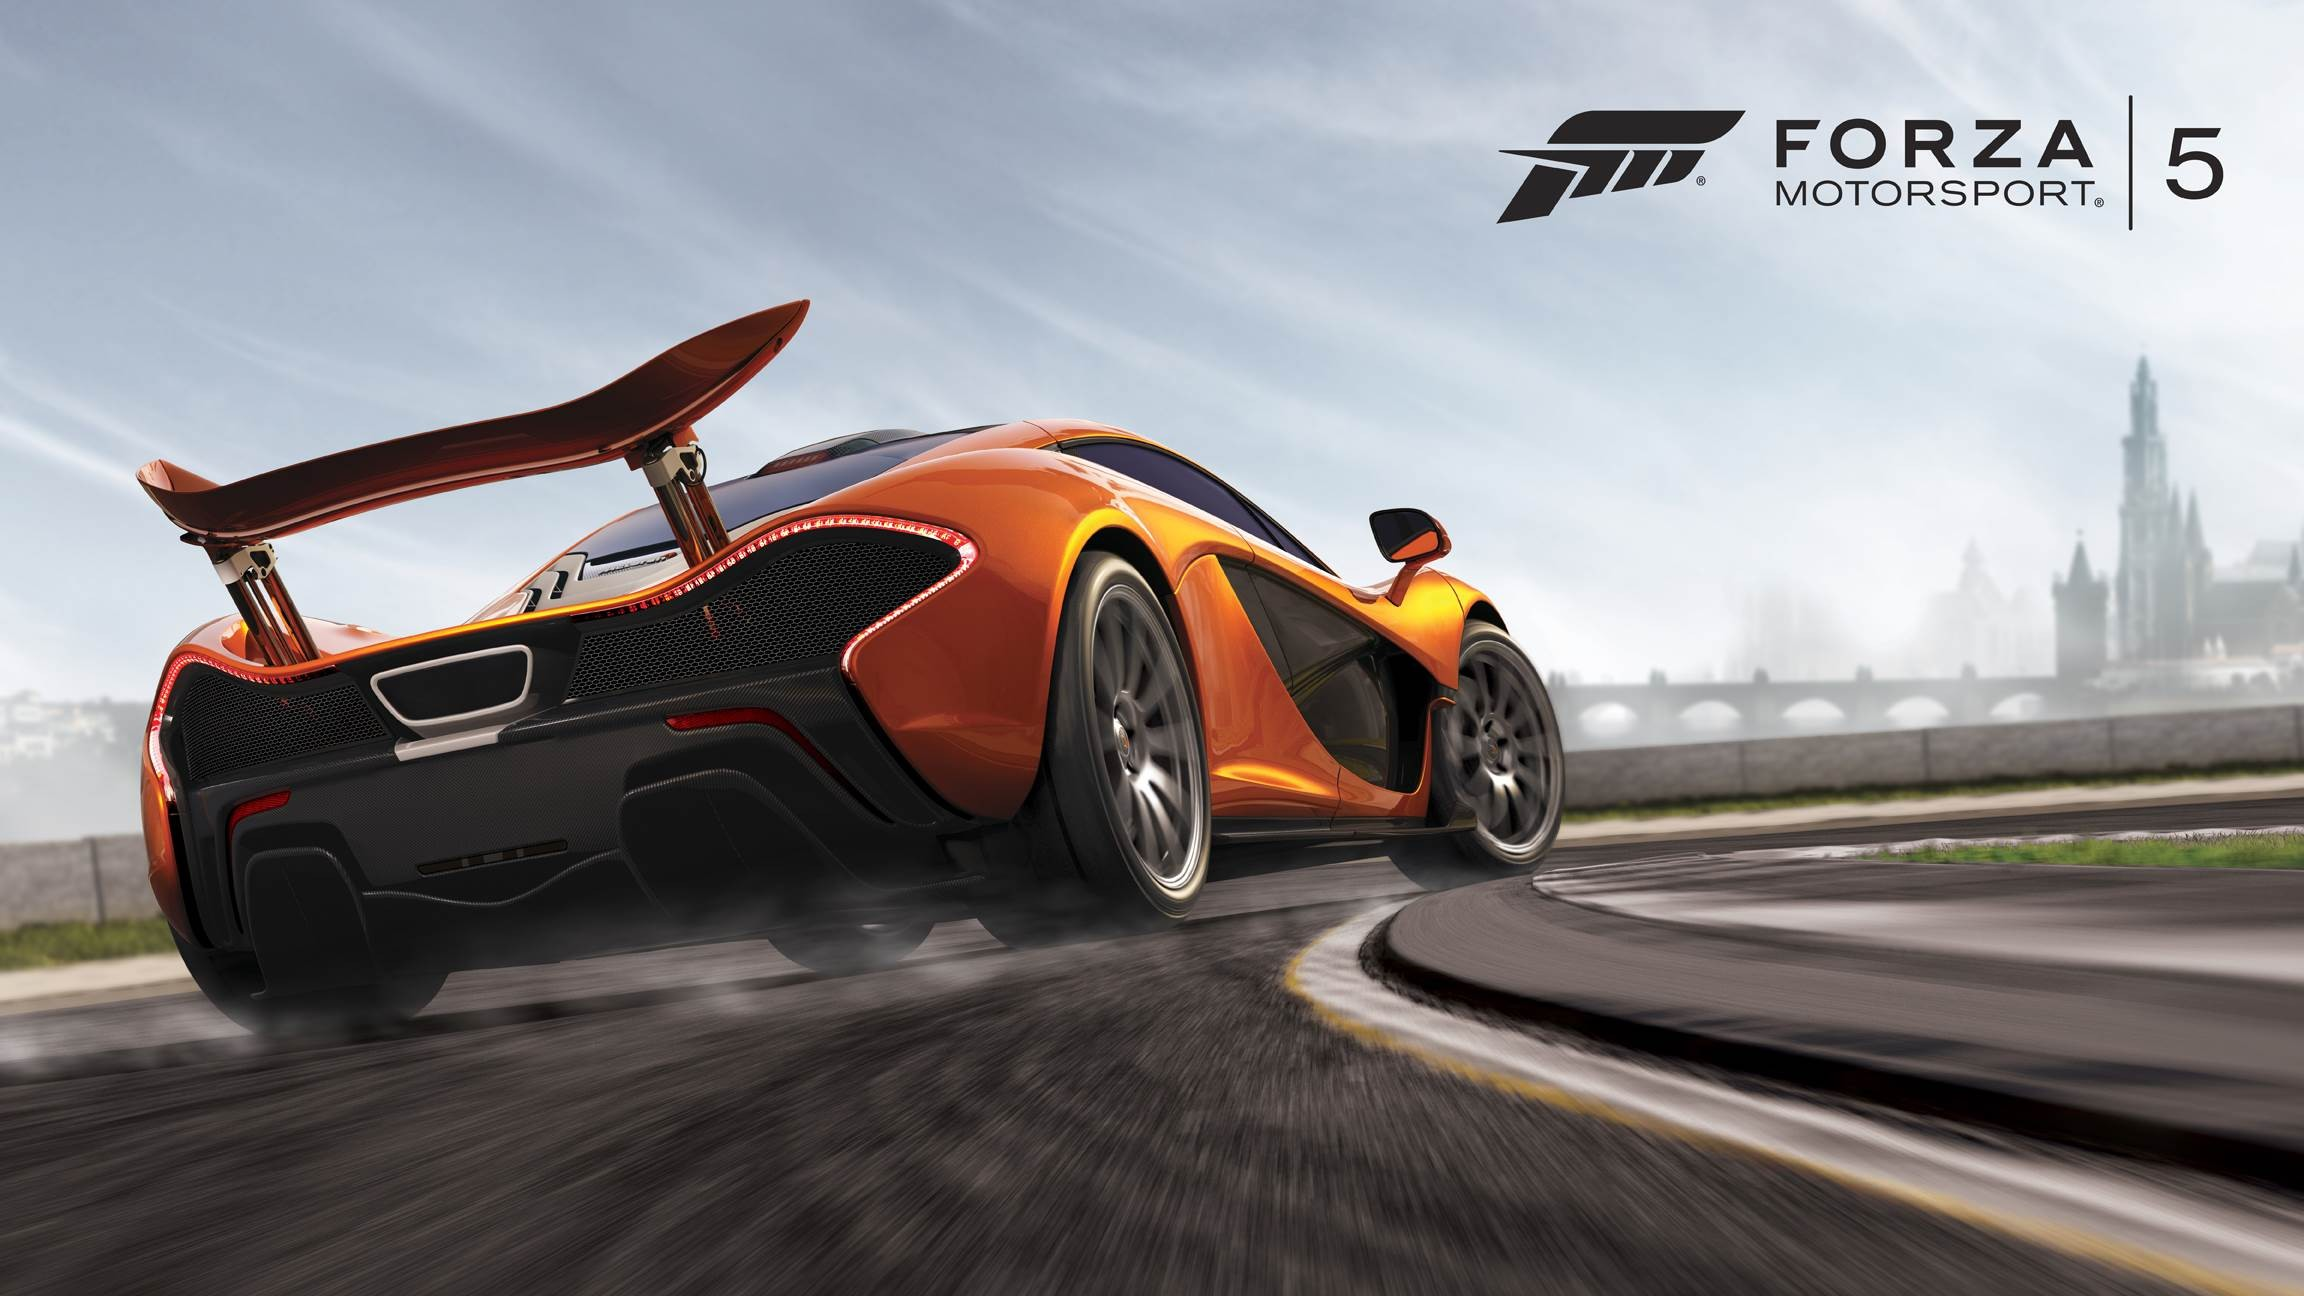 forza 5 nous d voile son mode auto vista xbox one gamerobs. Black Bedroom Furniture Sets. Home Design Ideas